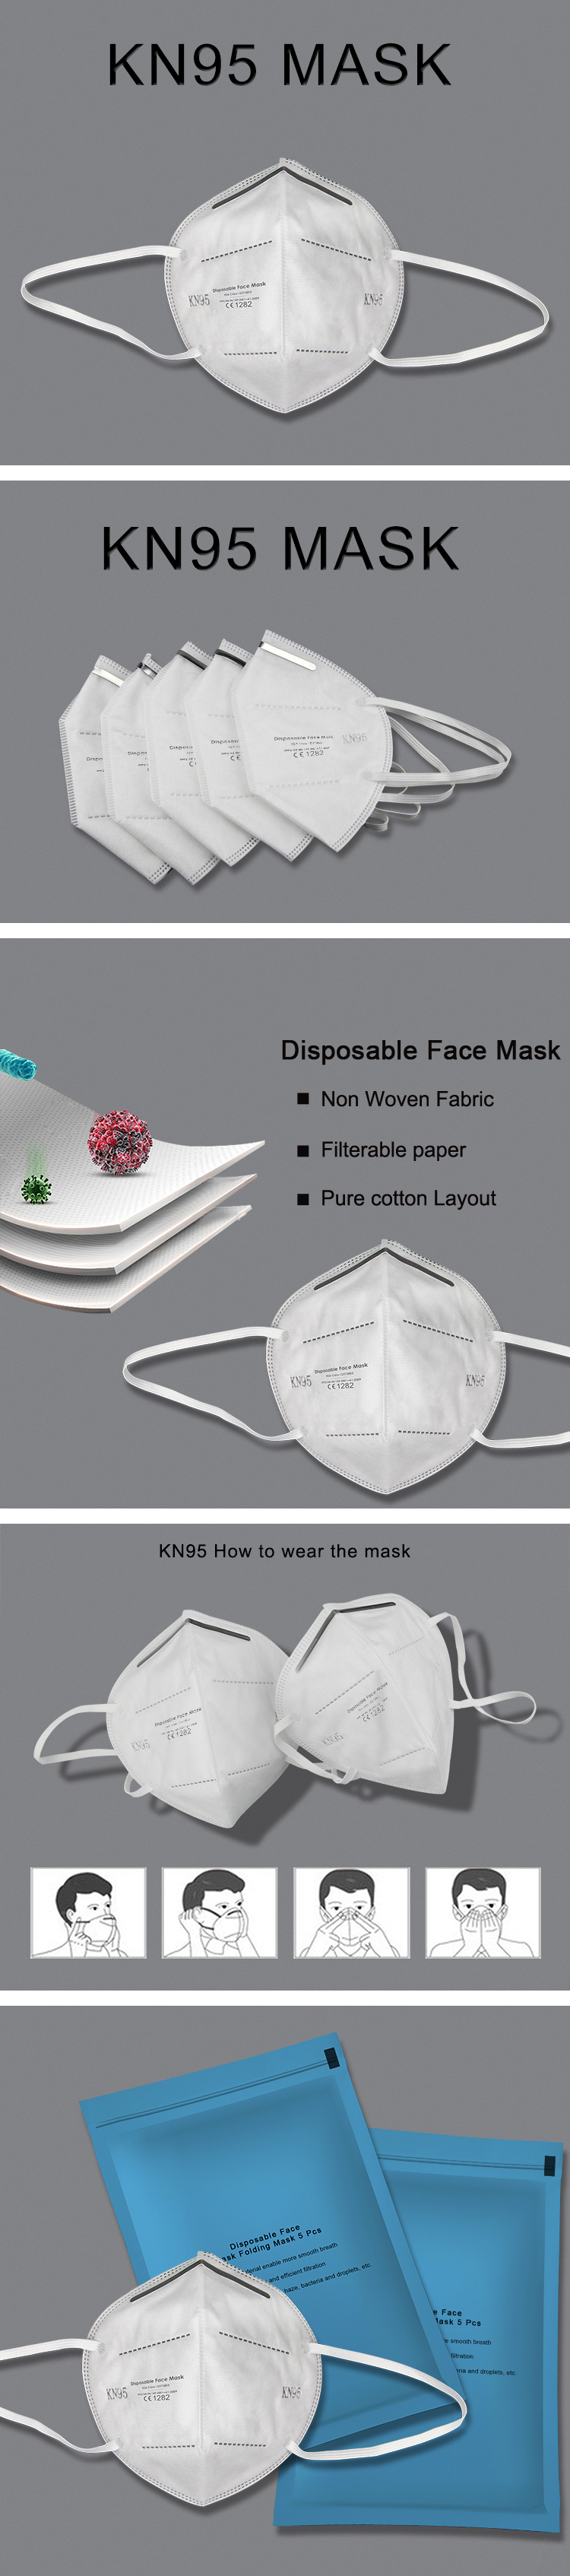 CE FDA Listed High quality Medical Non Woven Fabric Disposable Face Mask KN95 Mask